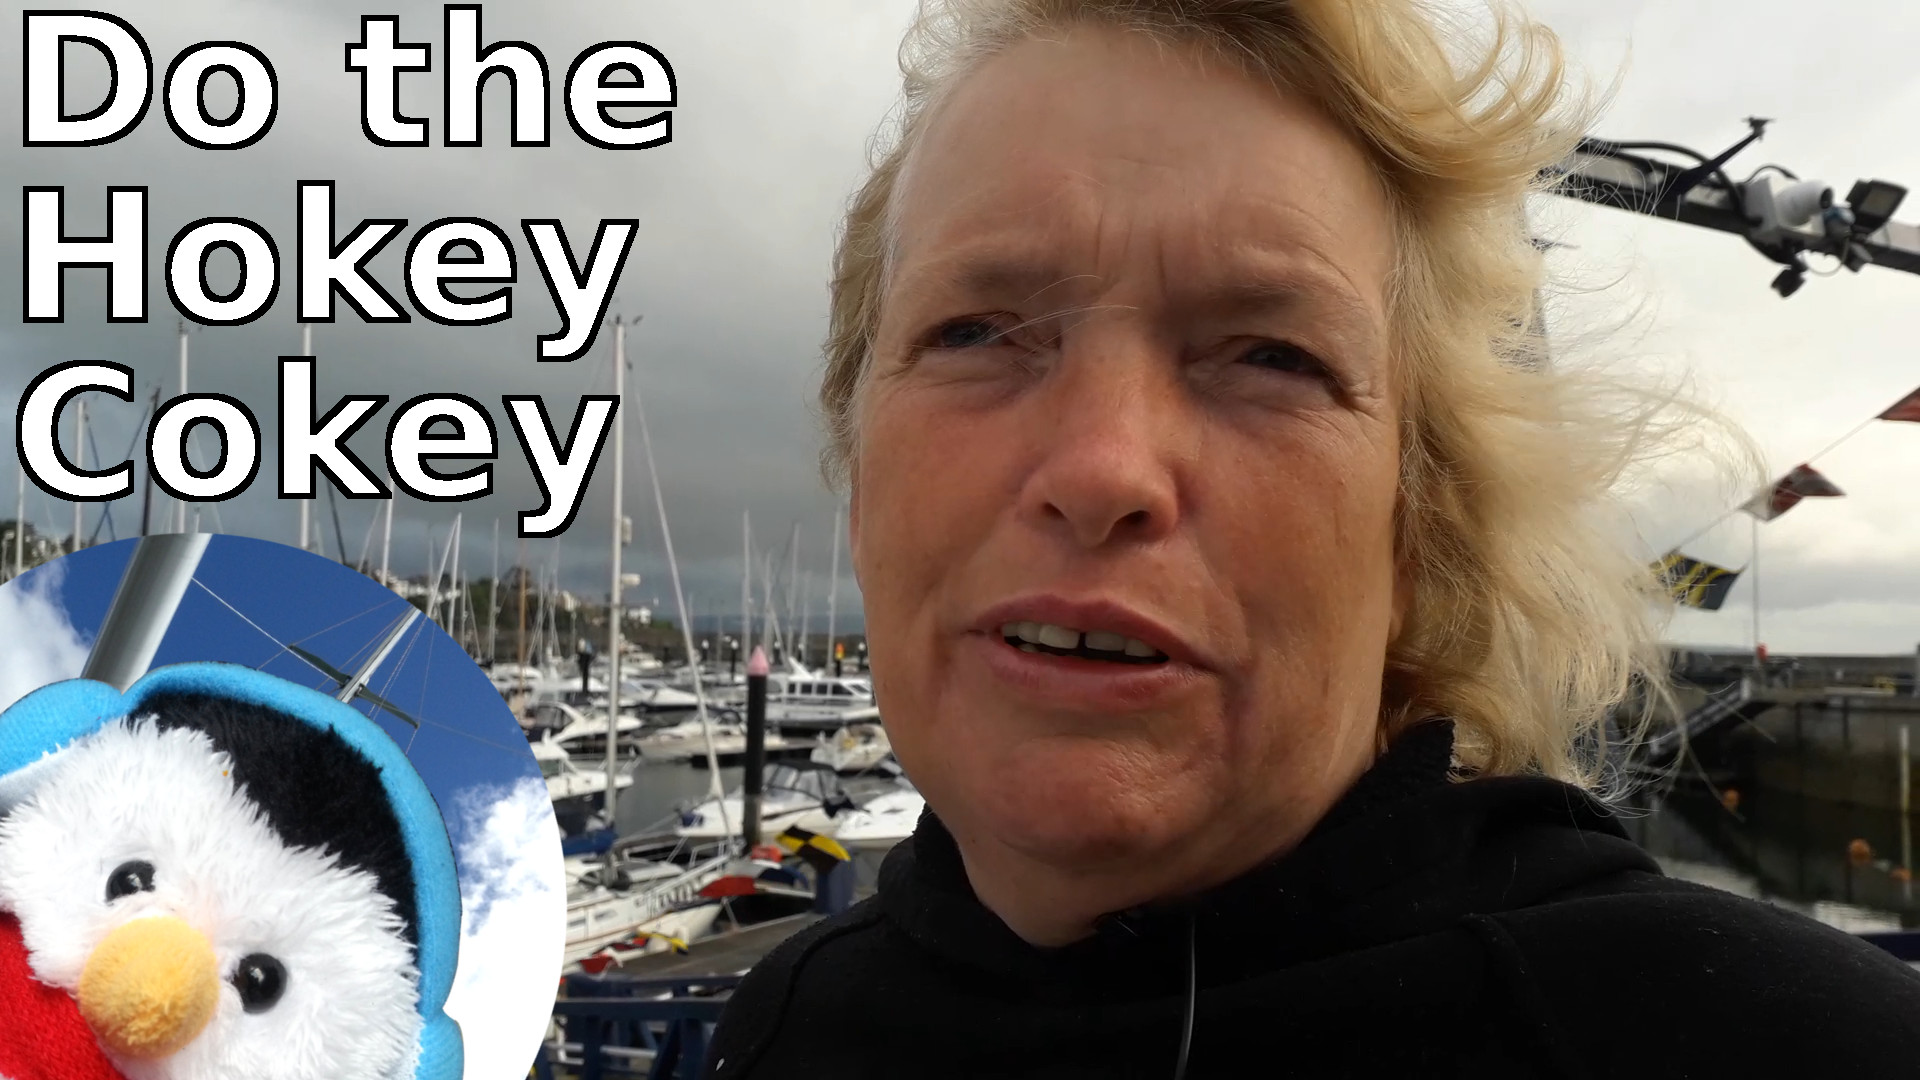 Watch our 'Do the Hokey Cokey' and add comments etc.